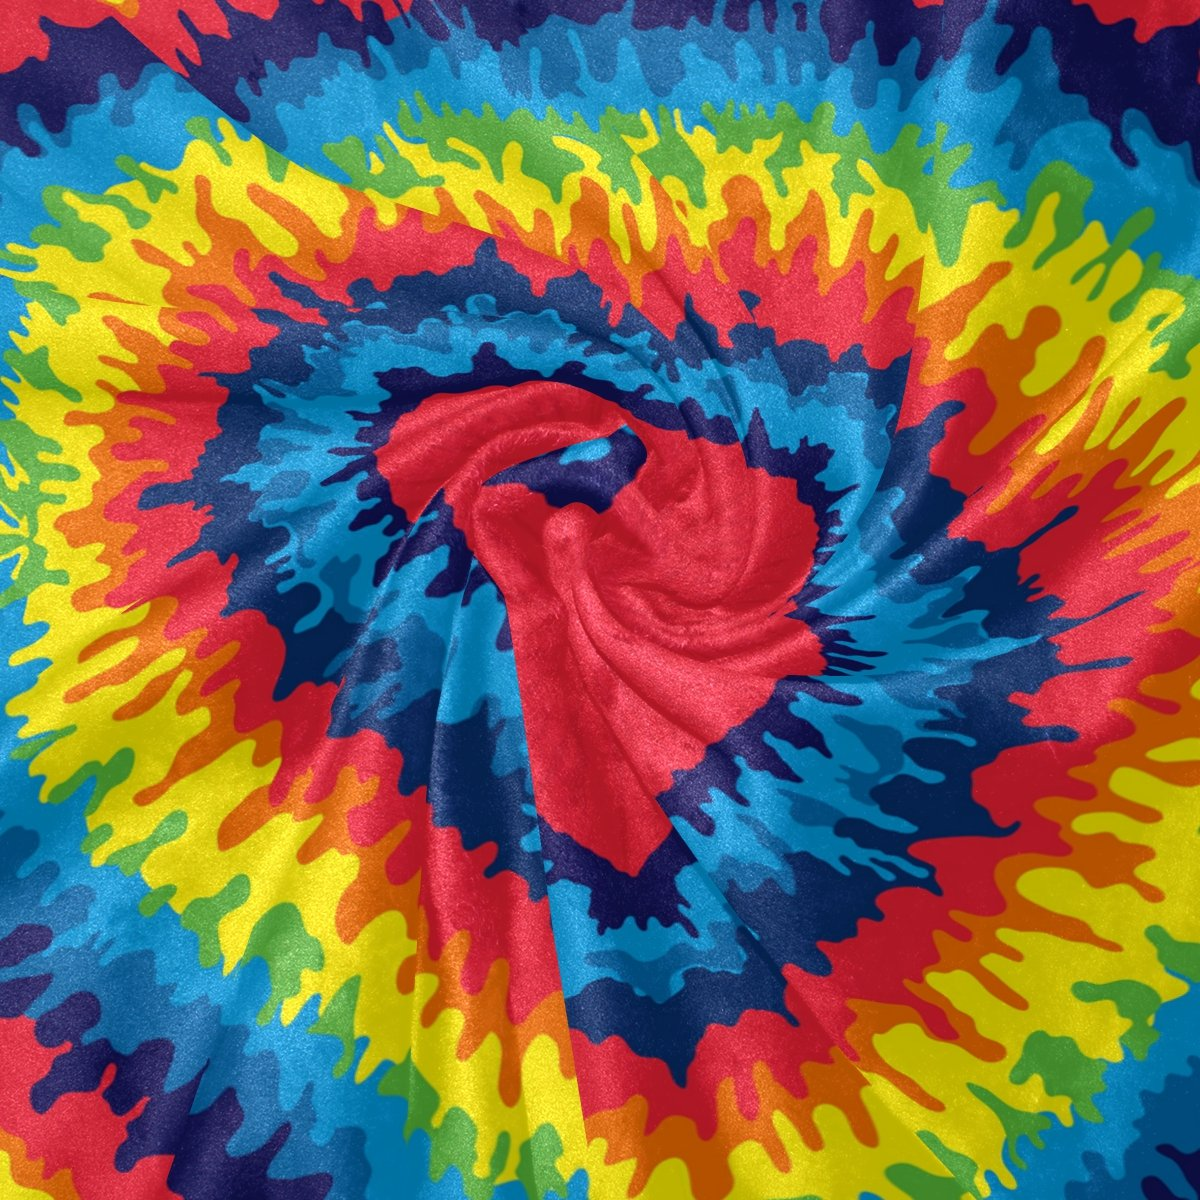 COOSUN Heart Tie Dye Super Soft Warm Blanket Lightweight Throw Throw Throw Blankets for Bed Couch Sofa Travelling Camping 60 x 50 Inch for Kids Boys Girls B0789D3MY1 Kopfkissenbezüge 059470